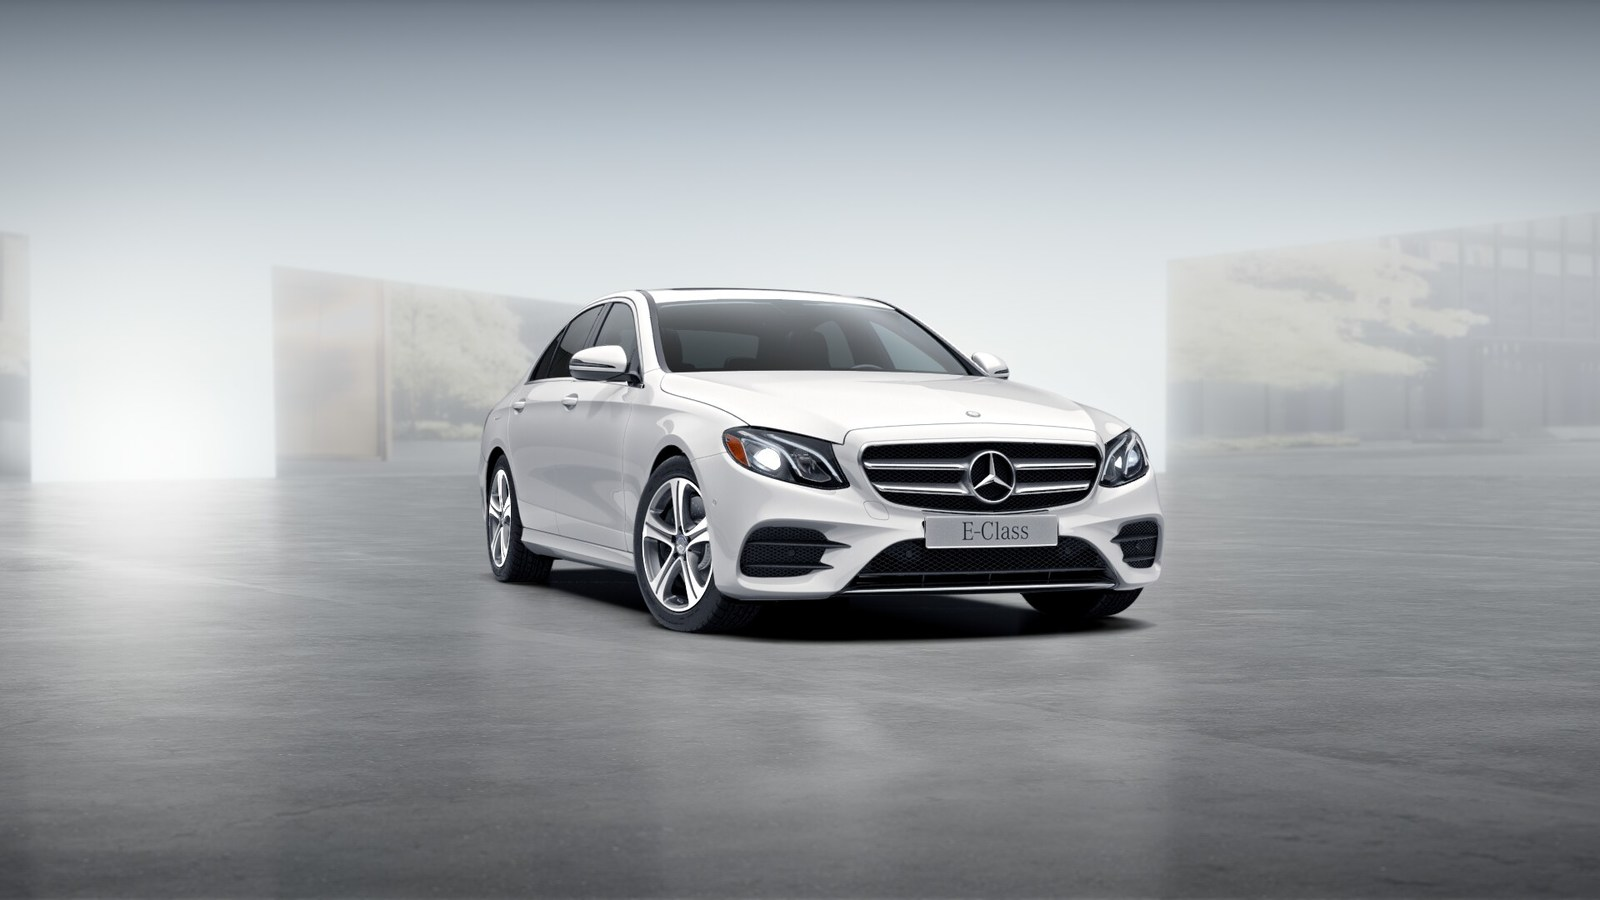 New 2017 mercedes benz e class e400 4 door sedan in st for Performance mercedes benz st catharines